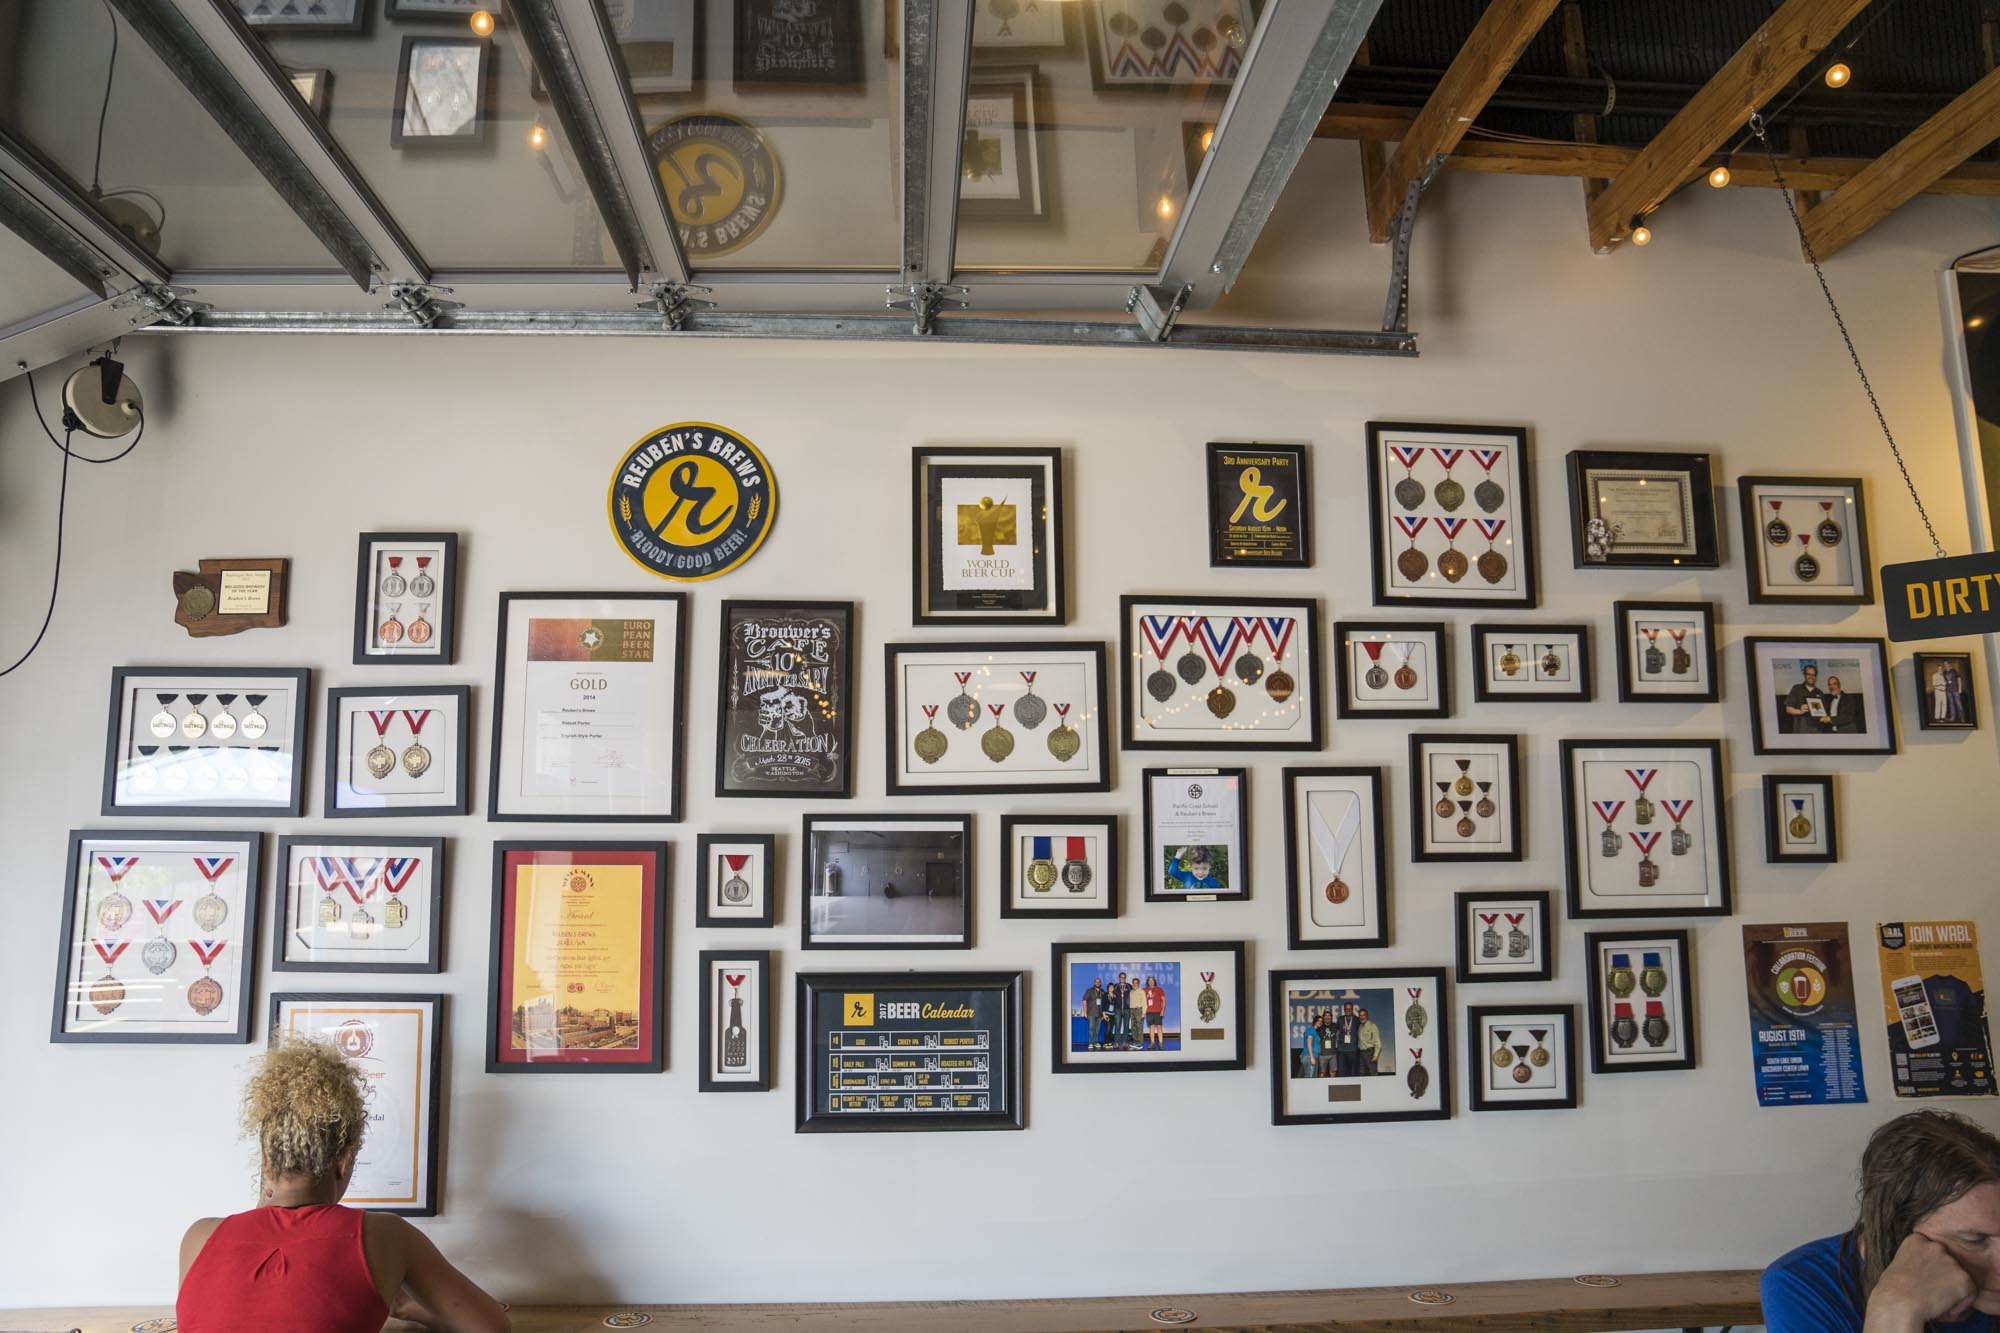 There are lots of medals on the wall from winning homebrew compeitions at Reuben's Brews in Seattle.